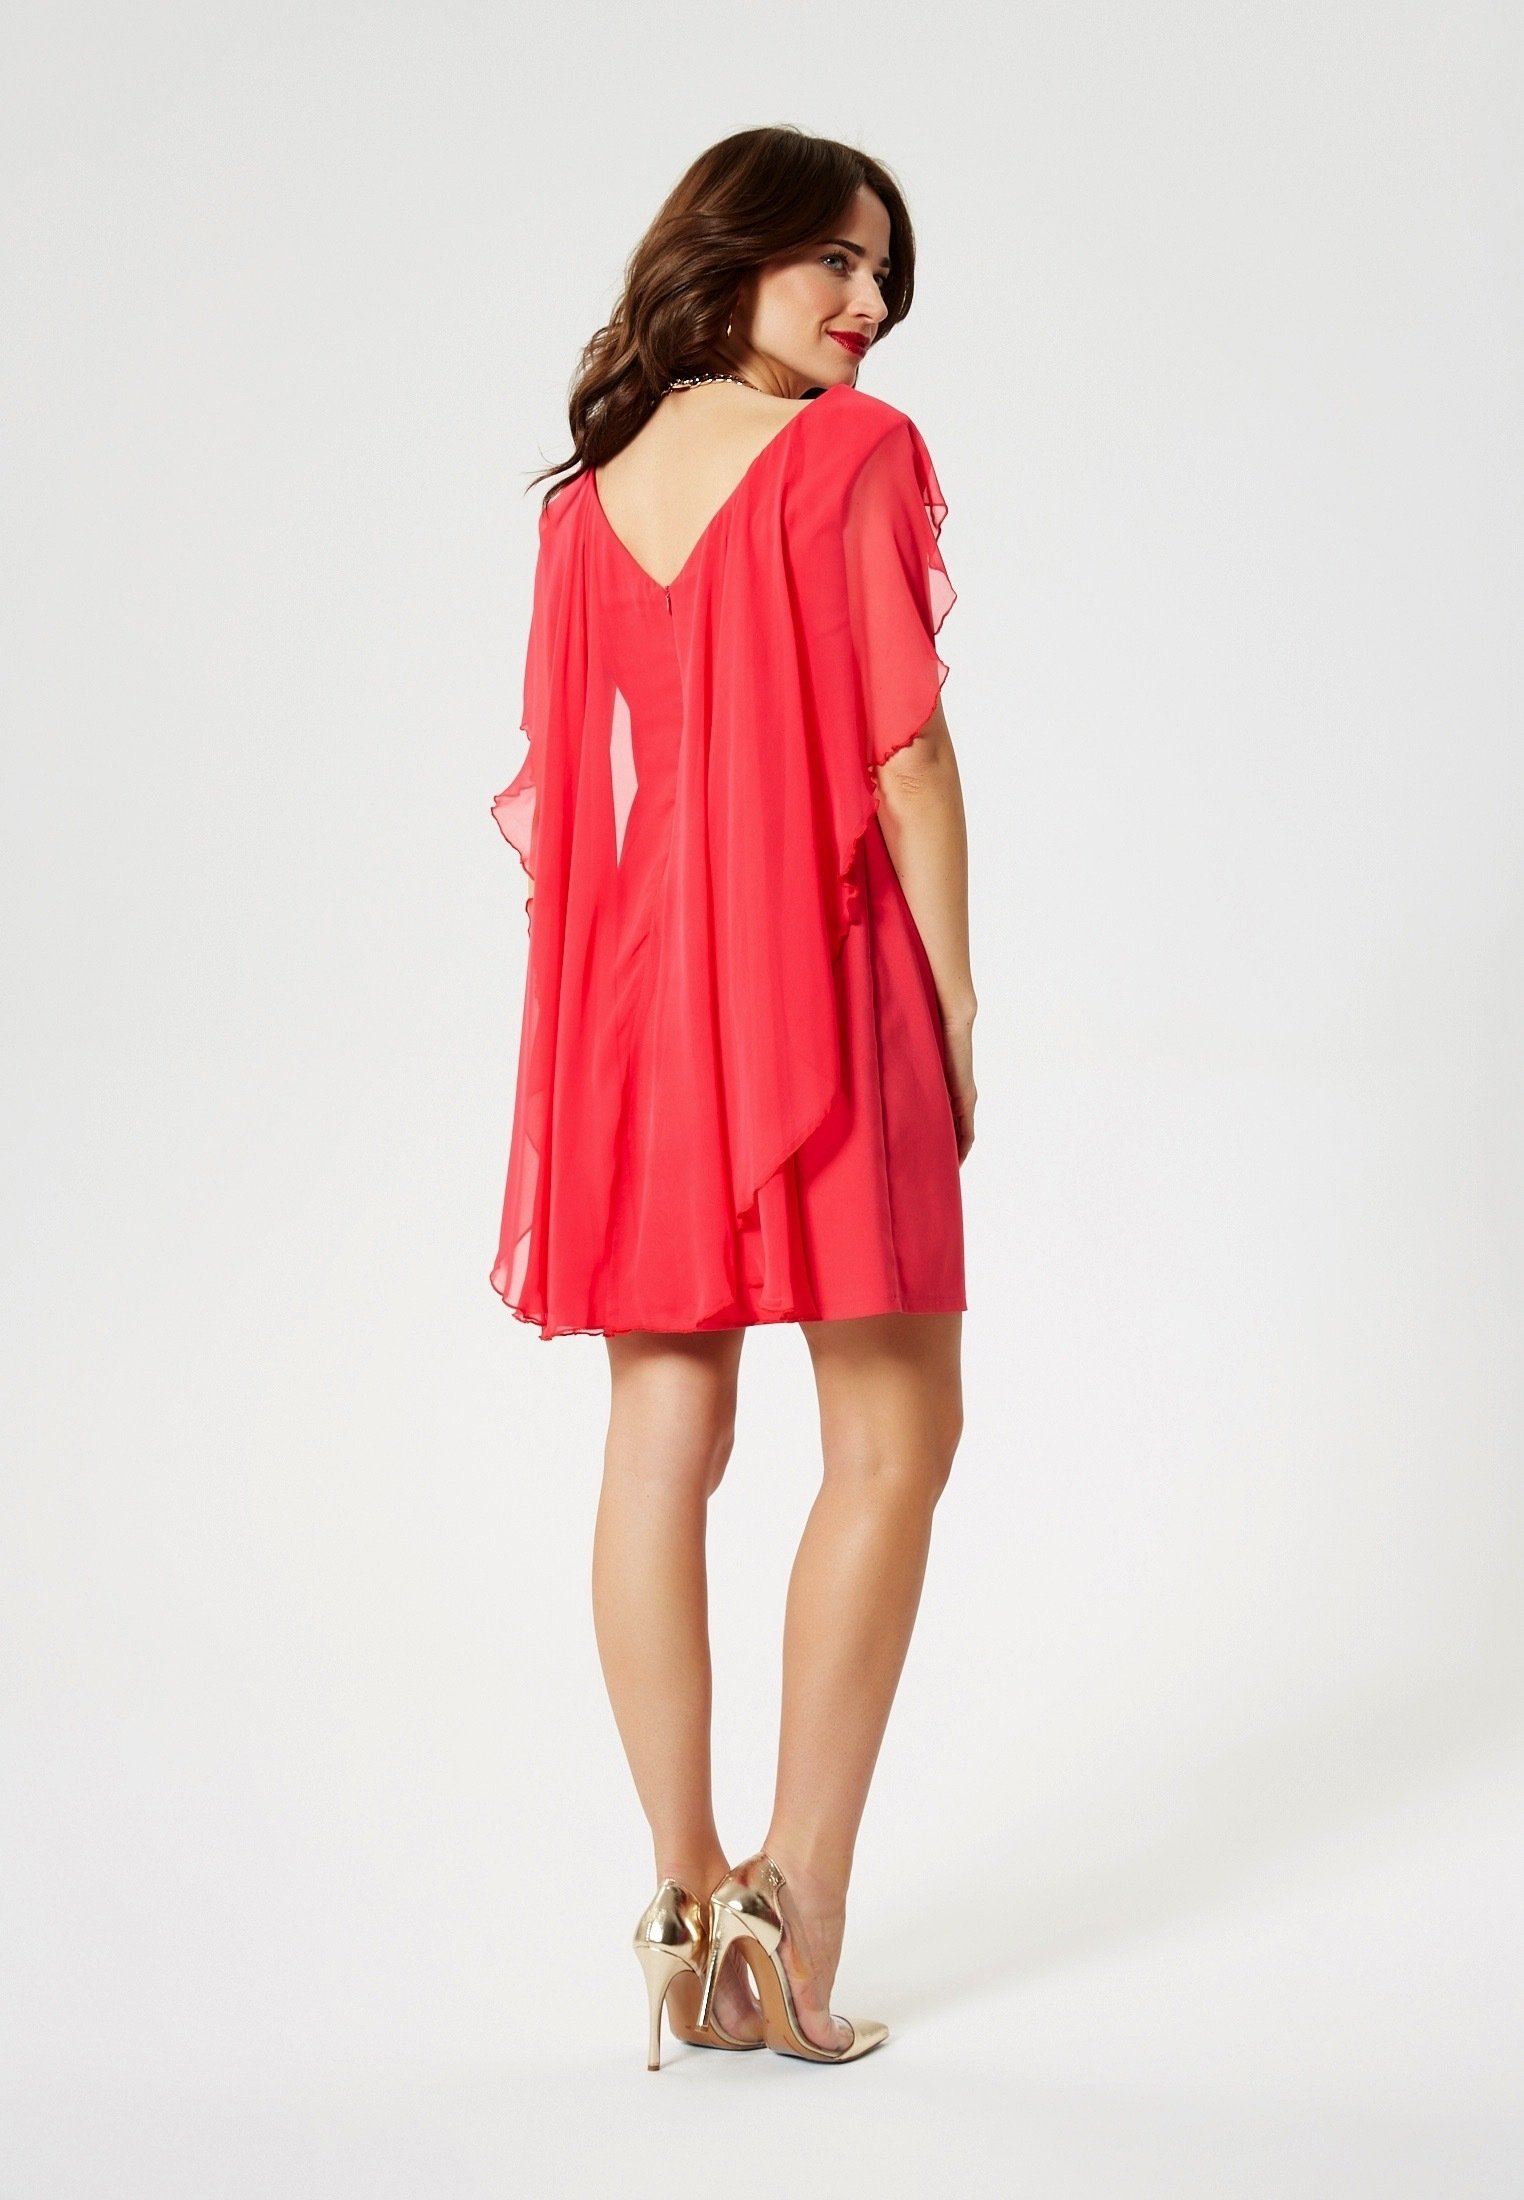 2020 New Women's Clothing faina Day dress red toZPMnZpN